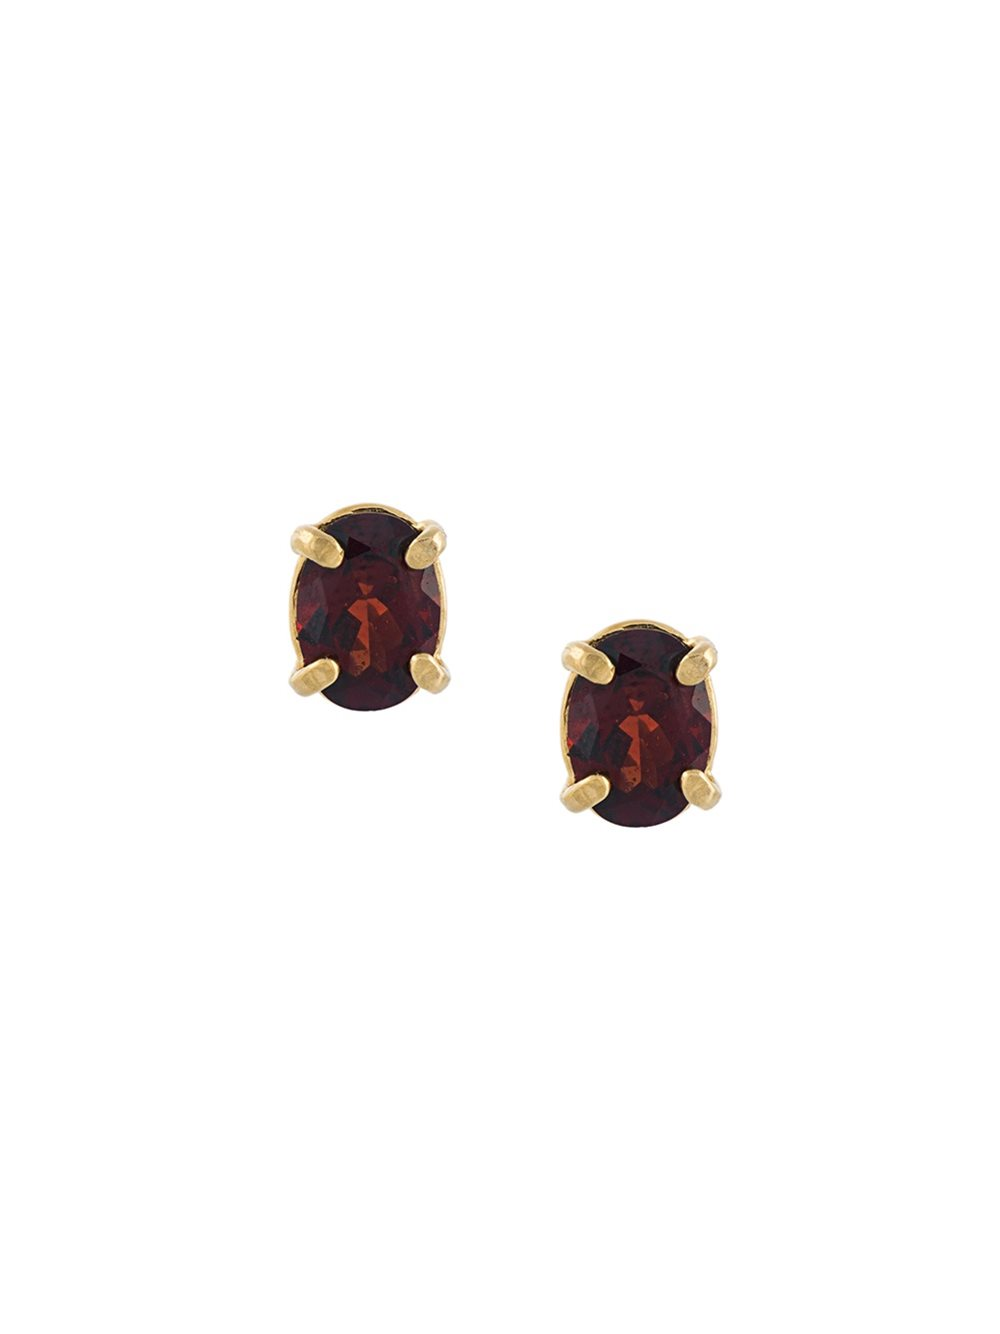 WOUTERS & HENDRIX In Mood For Love garnet earrings, FarFetch.com